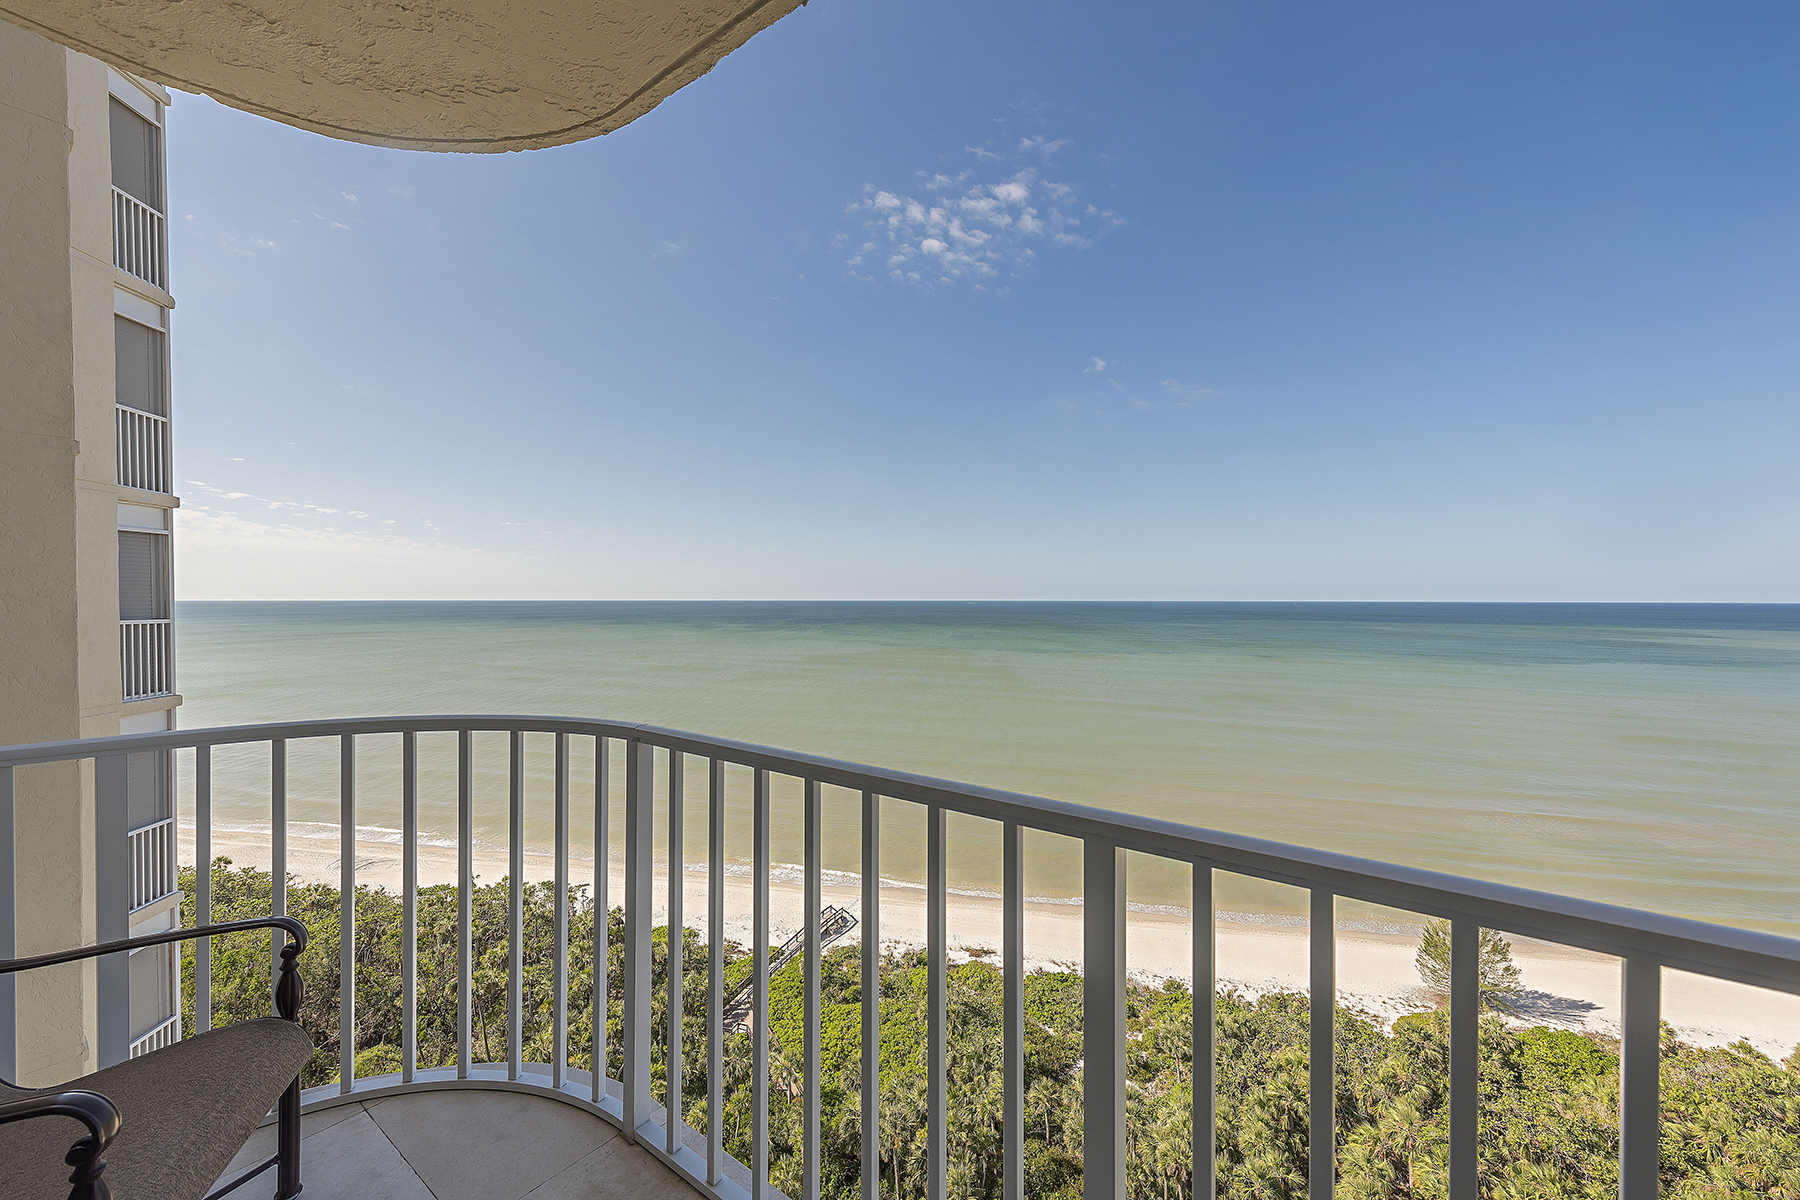 Additional photo for property listing at CONTESSA AT BAY COLONY 8111  Bay Colony Dr 1604,  Naples, Florida 34108 United States